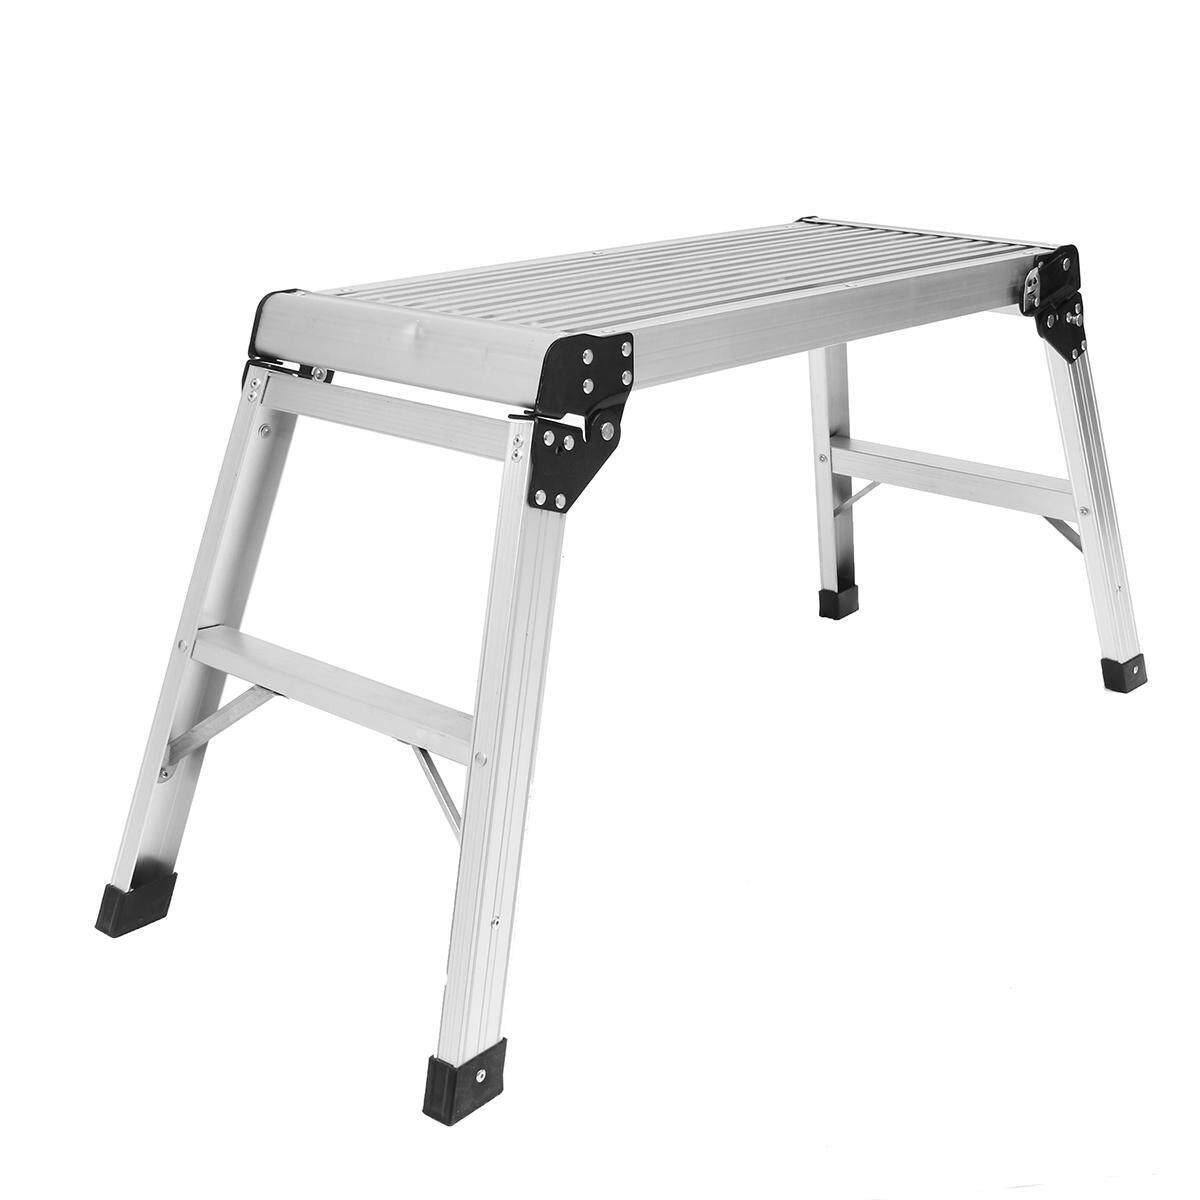 Ladder Work Platform Aluminium Bench Folding Elevated Step Metal Painting Car - Intl By Audew.